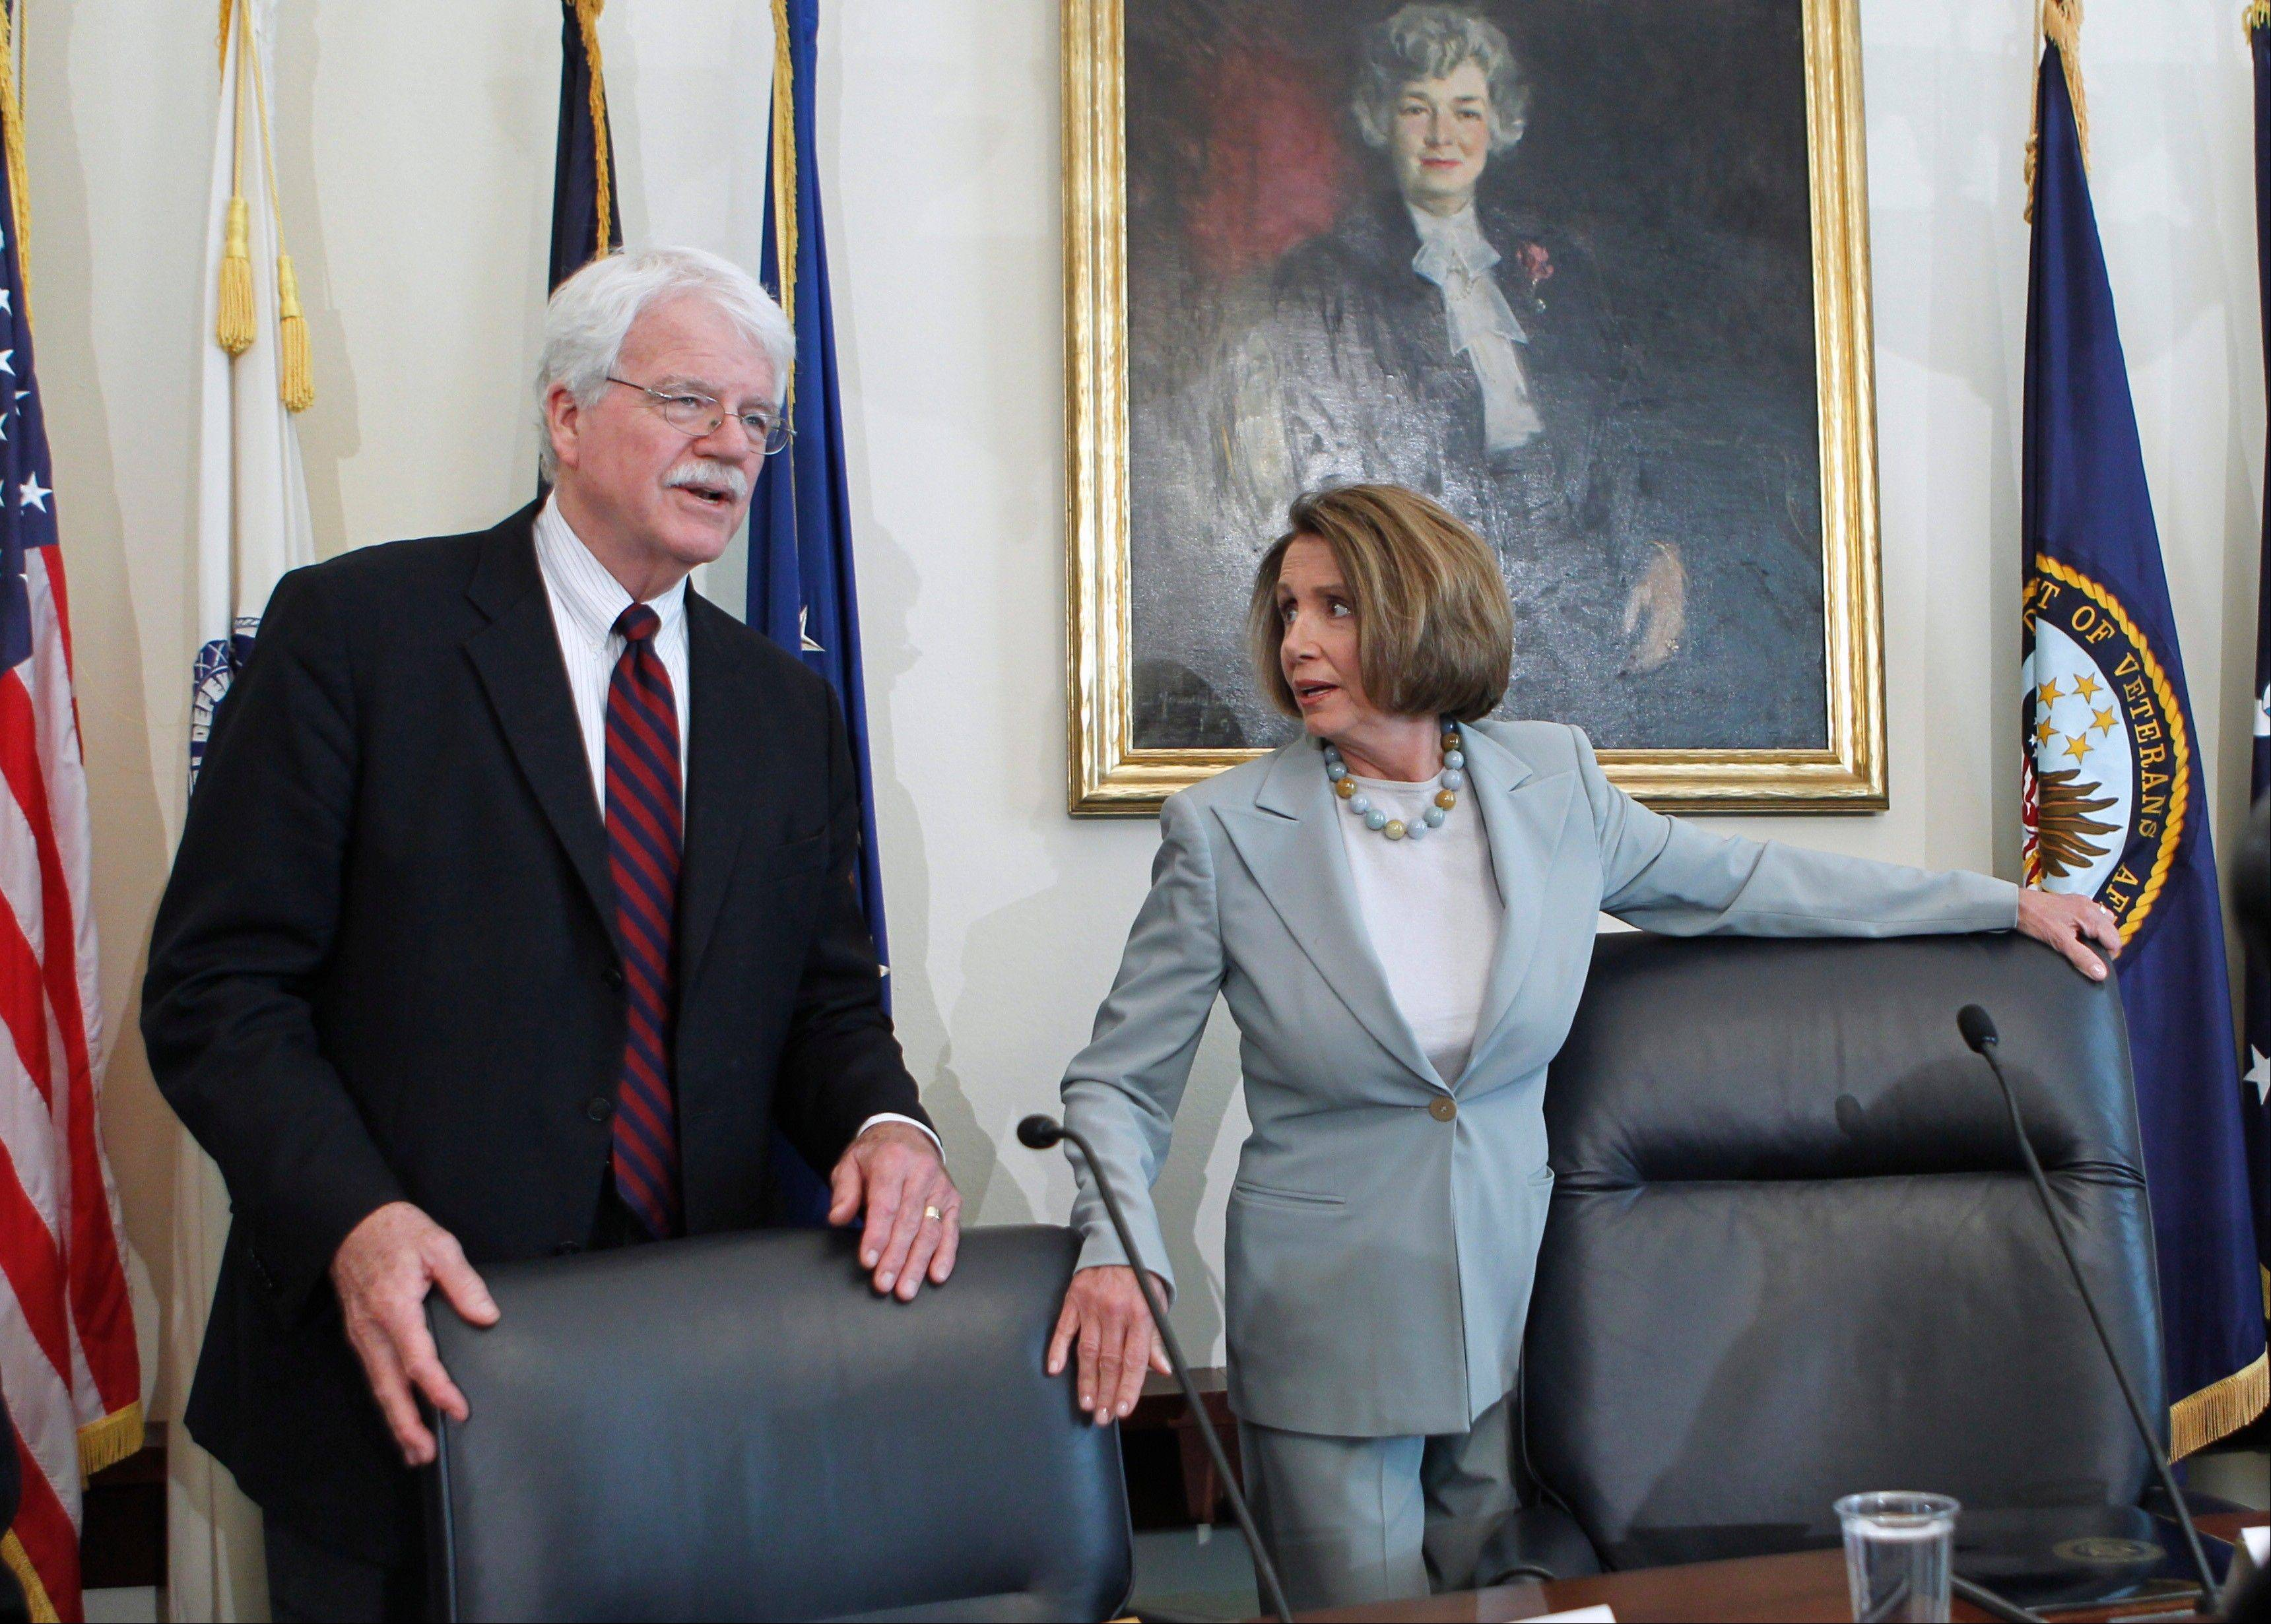 Rep. George Miller, left, and House Minority Leader Nancy Pelosi are seen in this photo from 2011. Miller, the top Democrat on the House Education and Workforce Committee and a longtime confidant of Pelosi, announced Monday he will not seek re-election in 2014 after four decades in Congress.